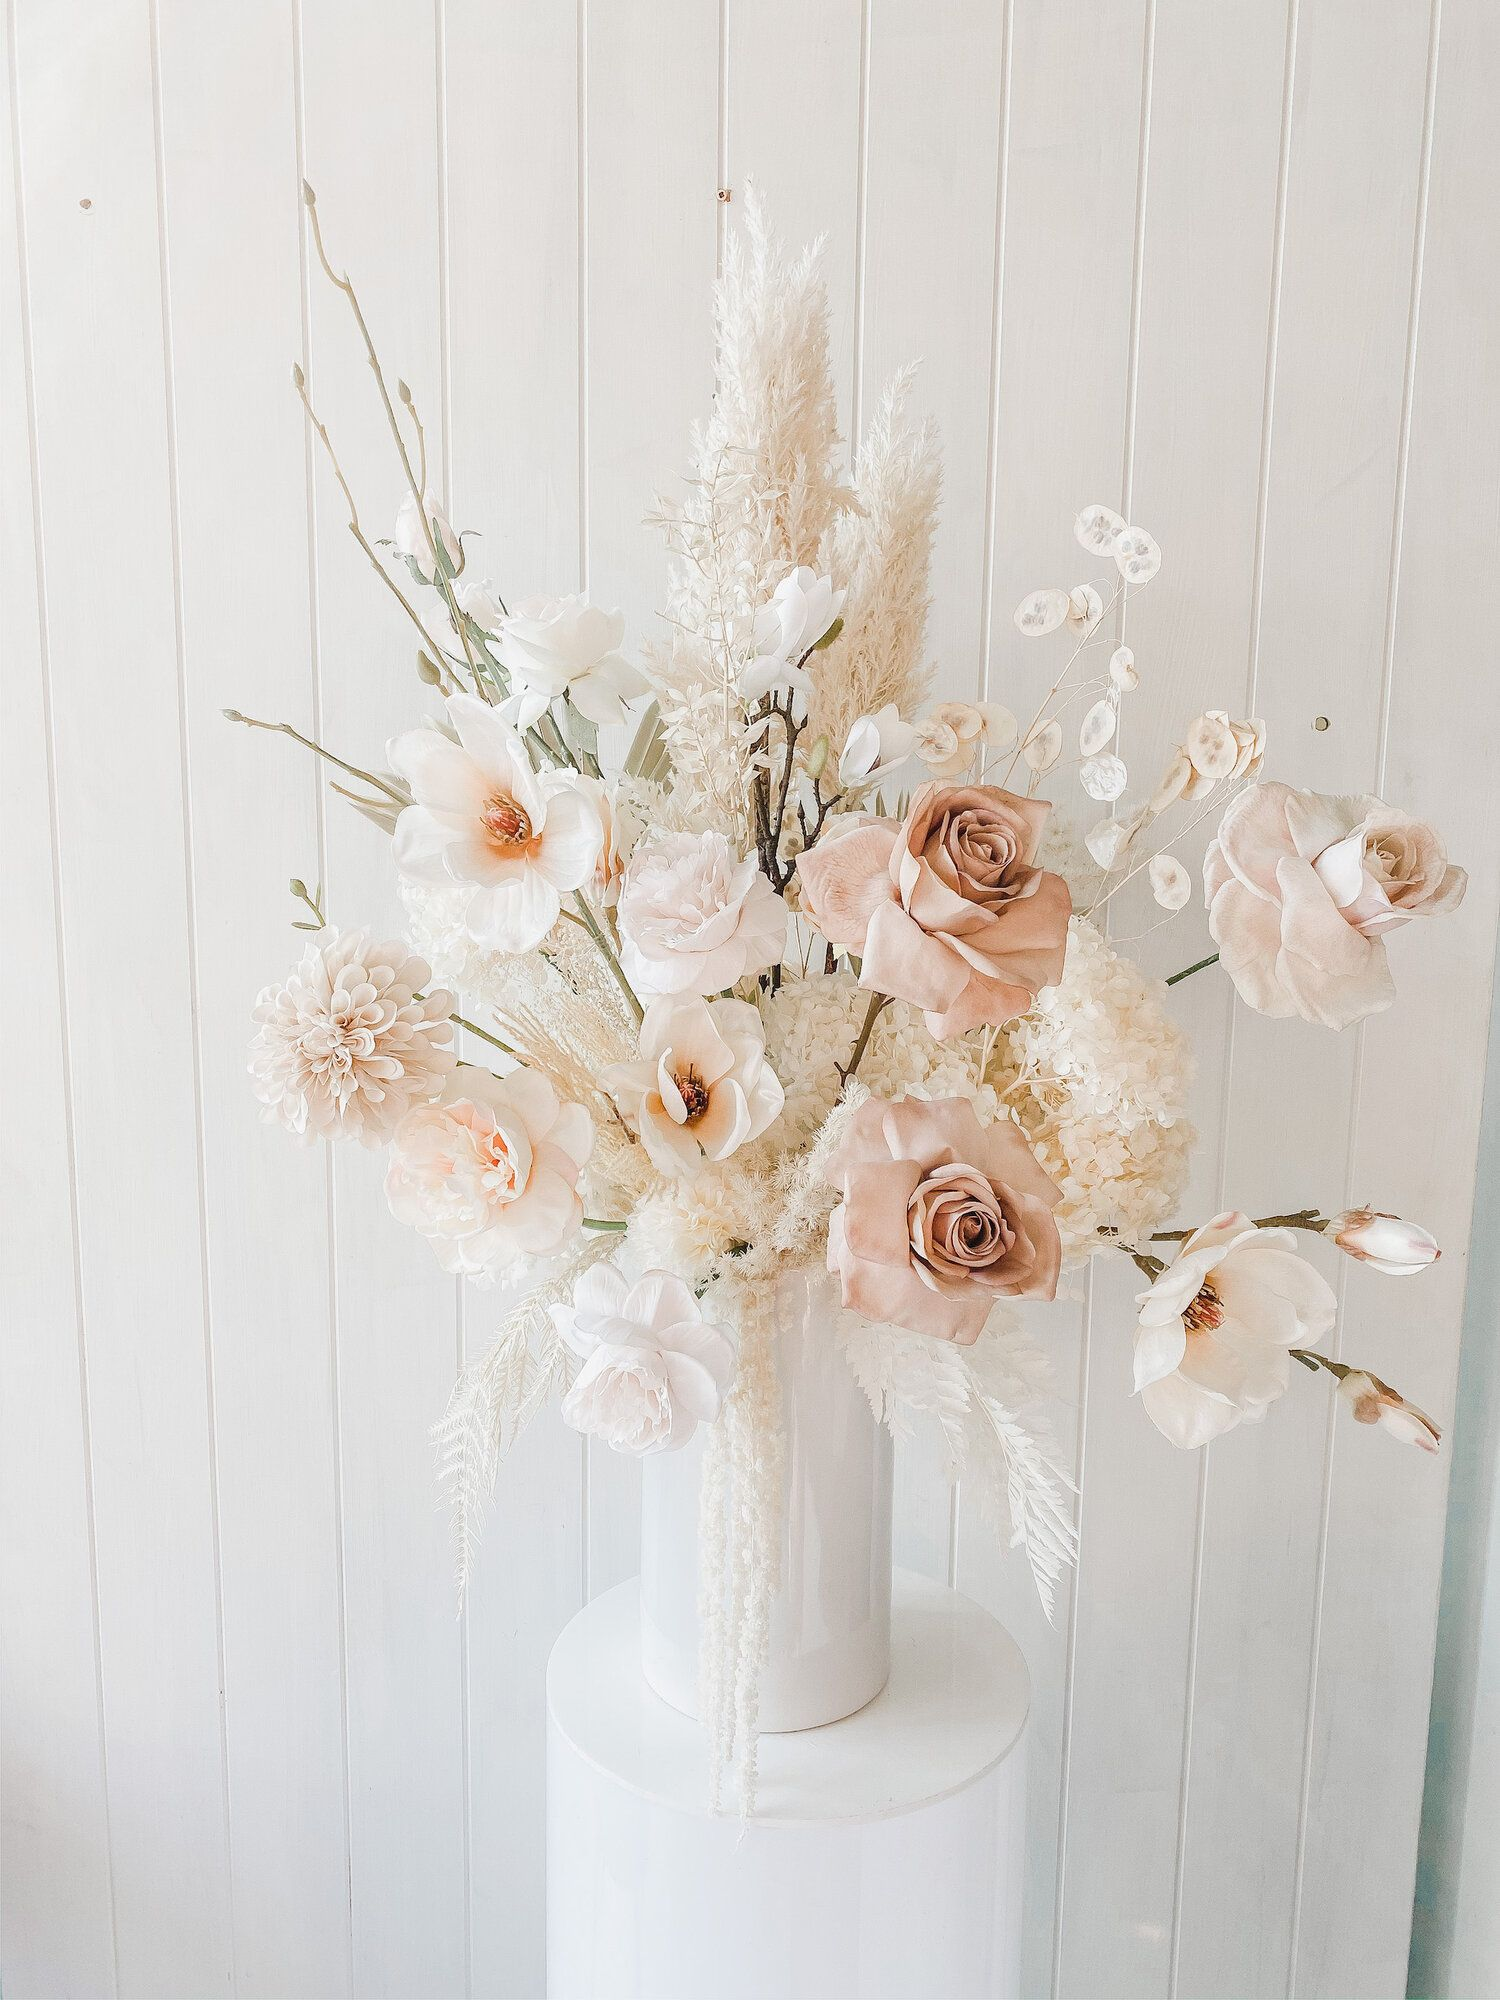 Sydney florist Chanele Rose flowers Preserved faux dried